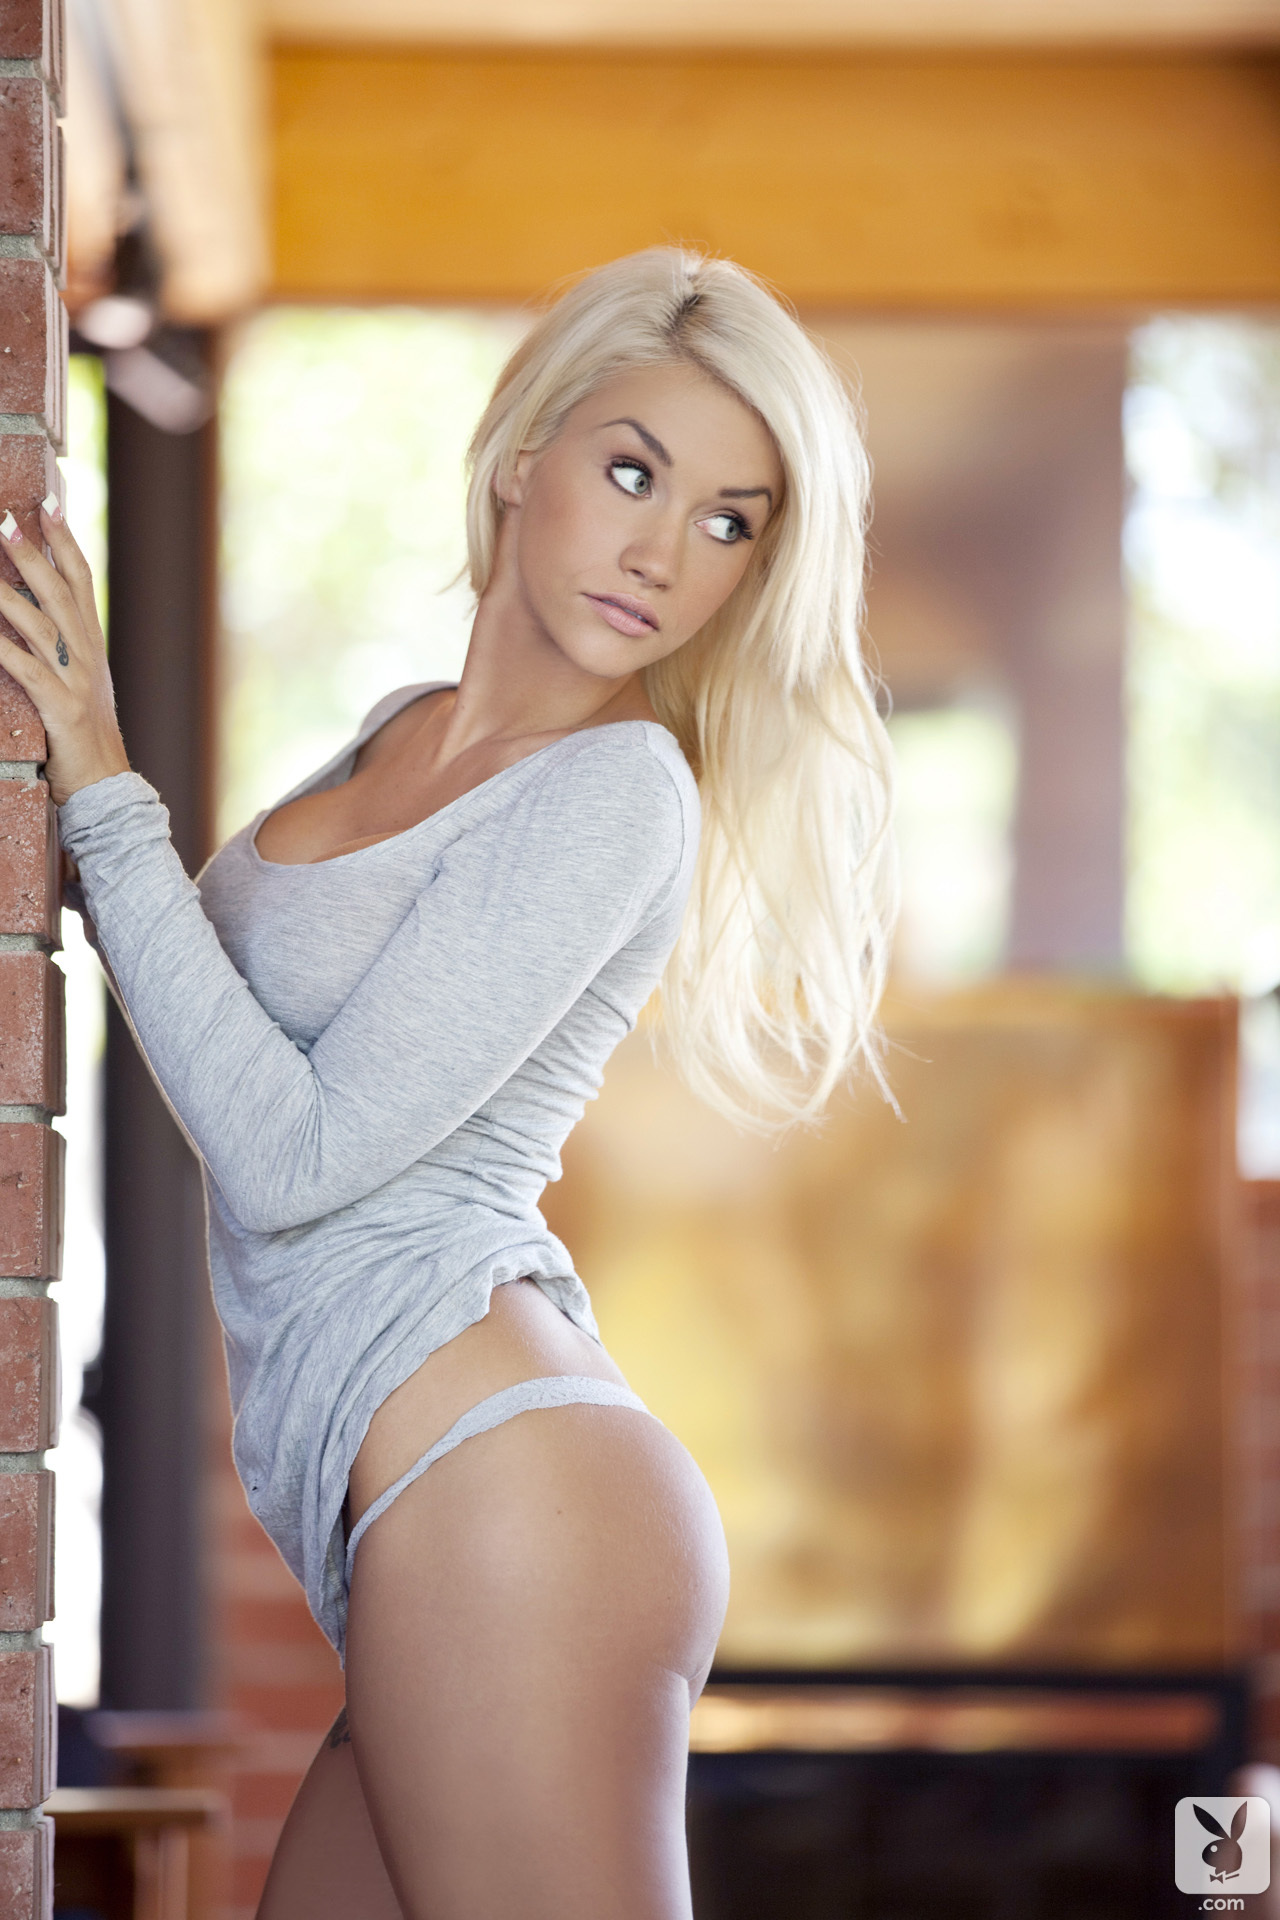 Taylor Seinturier Cybergirl Of The Month July 2012 Blonde Lust (35)